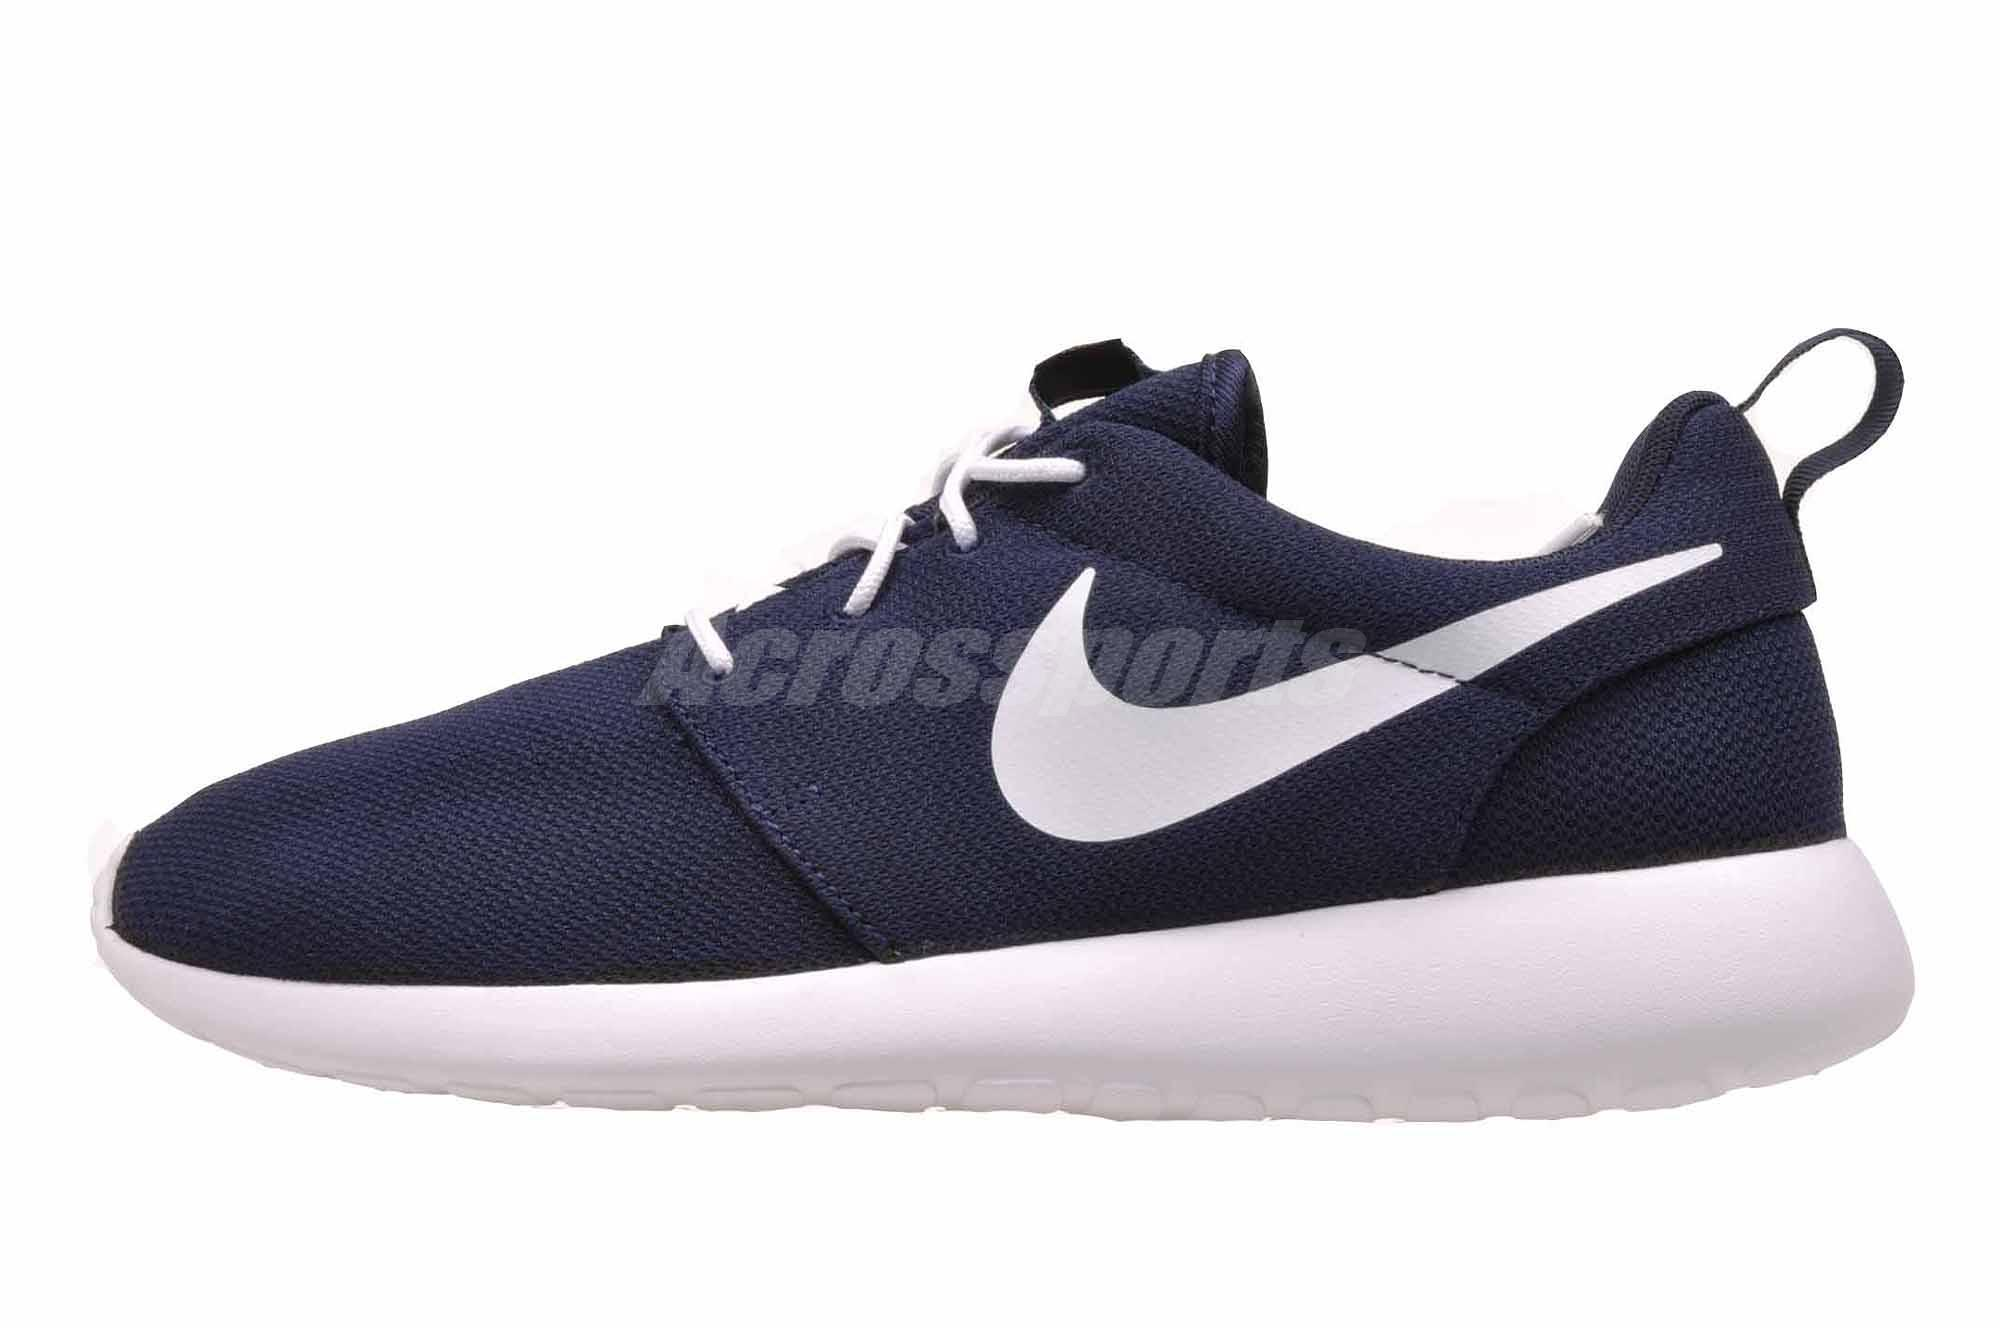 3bc391b054552 Details about Nike Roshe One Rosherun Casual Mens Shoes Fashion Sneakers Blue  511881-423